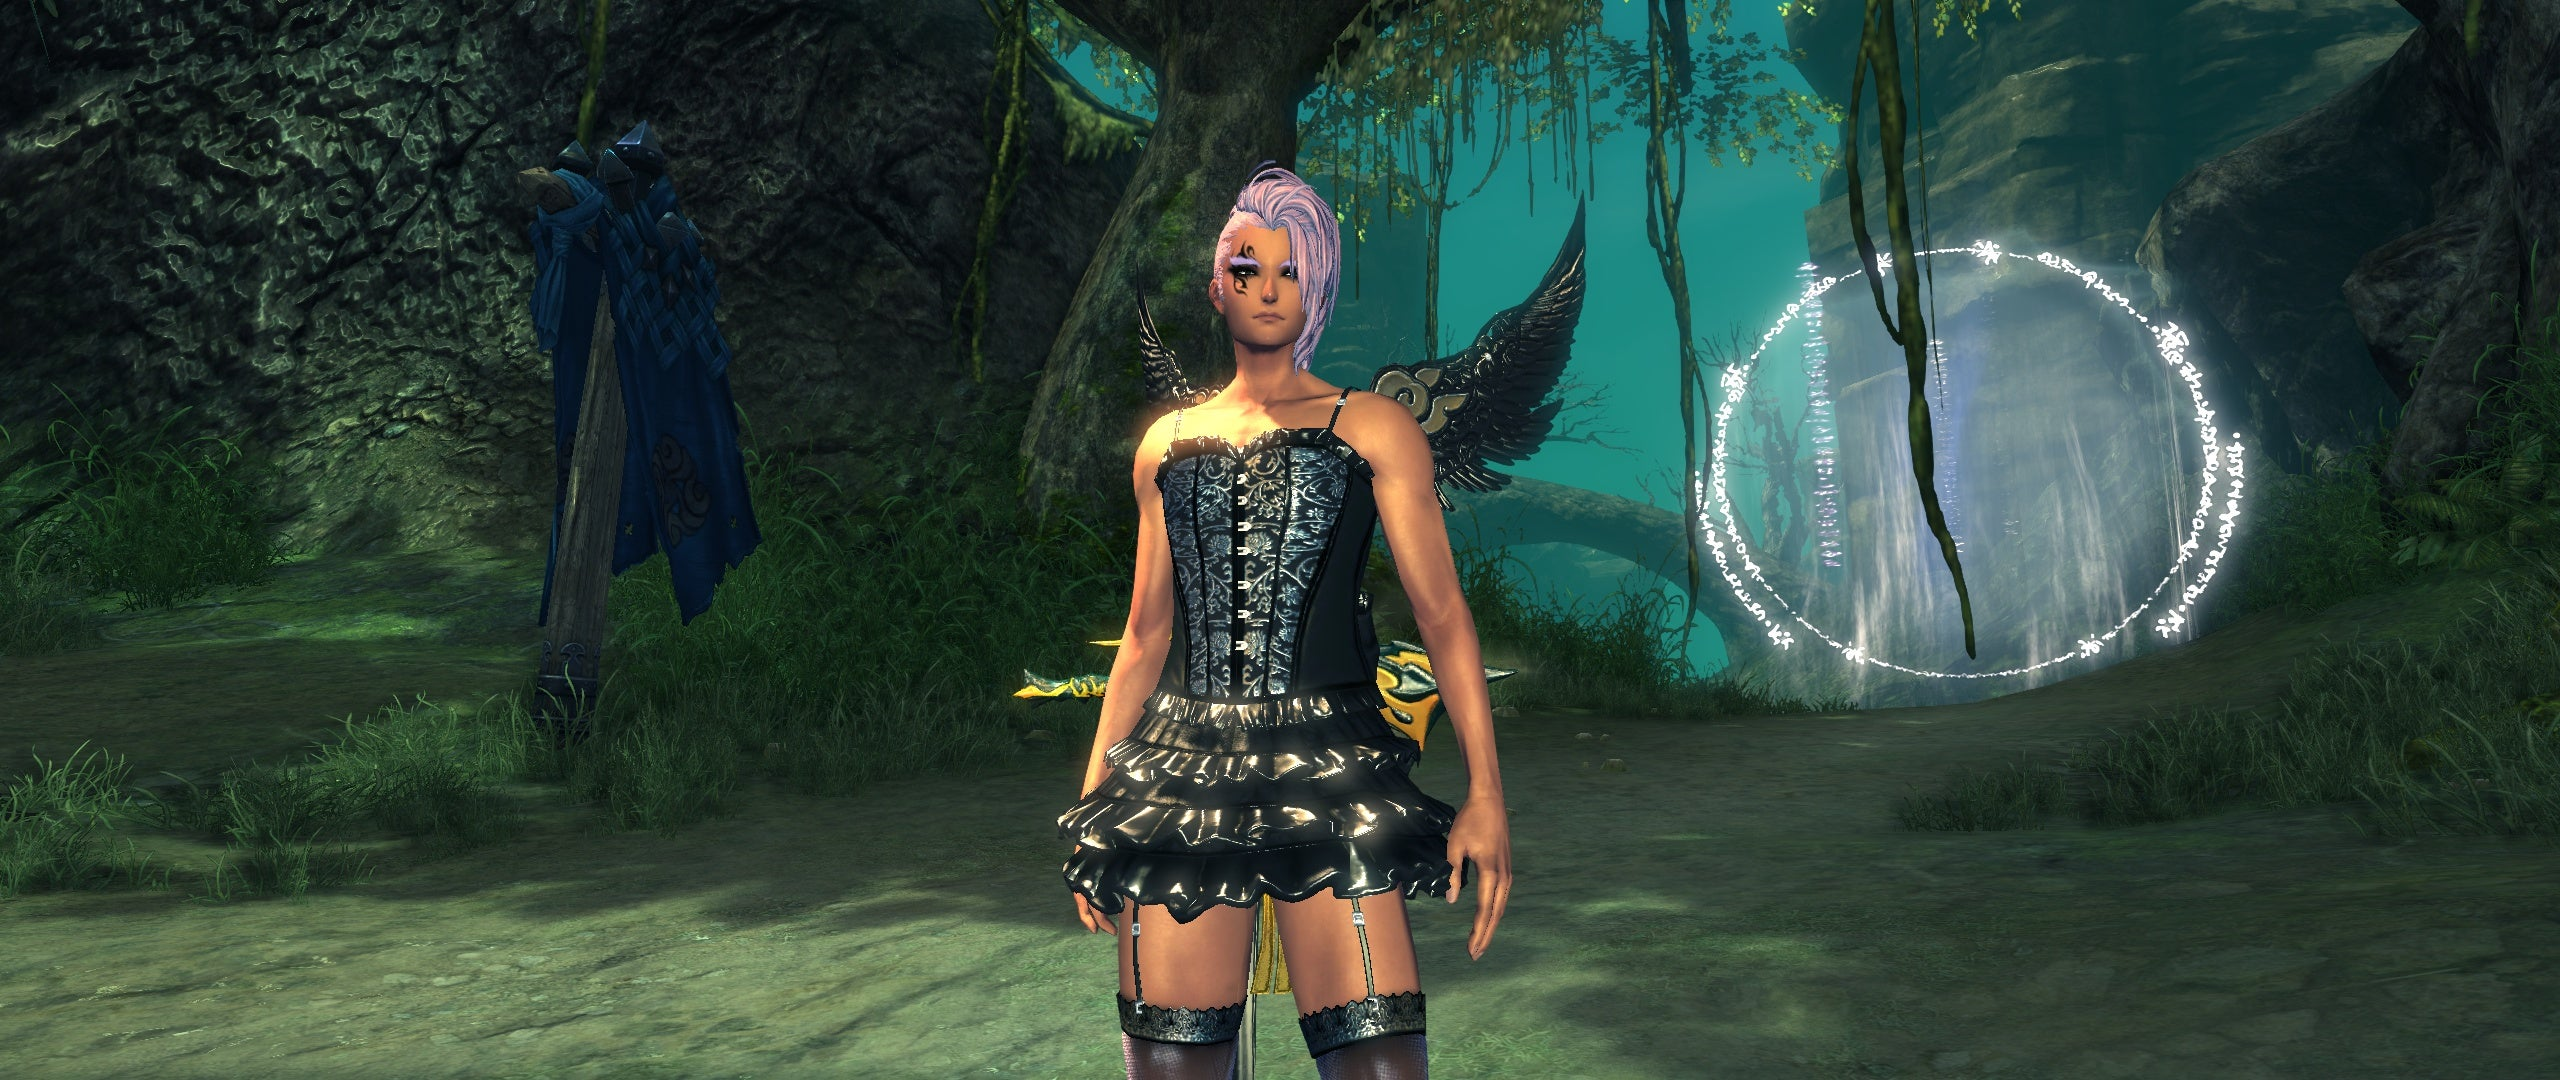 blade-soul free-to-play mmo-log mmorpg ncsoft review